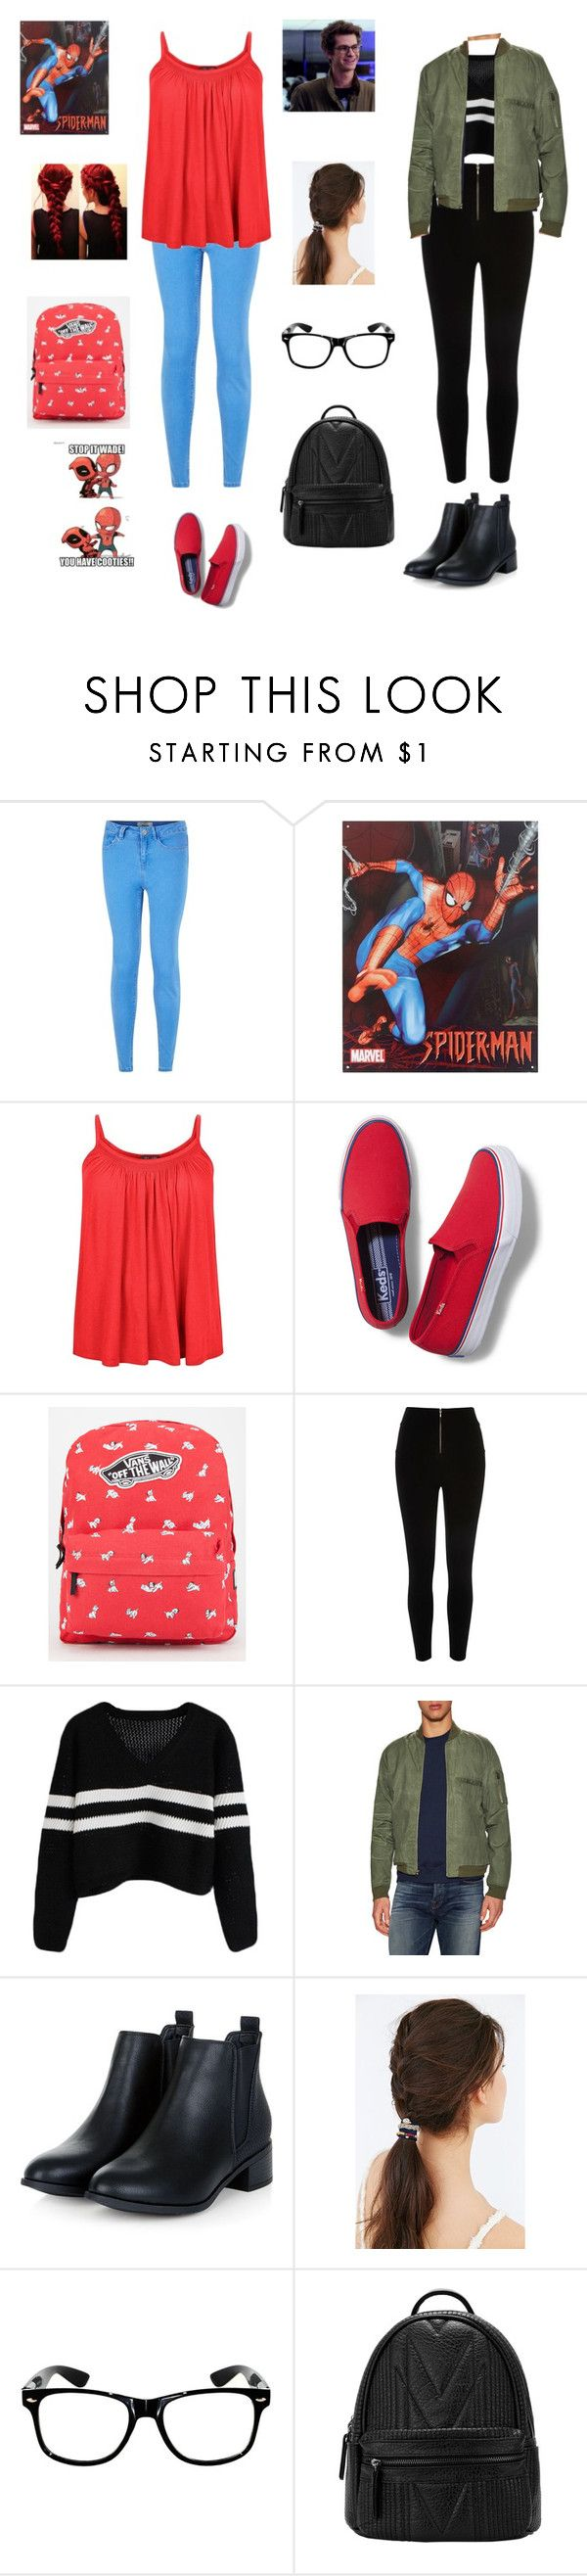 """""""Spiderman aka Peter Parker"""" by tina-a-unicorn ❤ liked on Polyvore featuring Keds, Vans, River Island, Tavik Swimwear, JEM, women's clothing, women, female, woman and misses"""